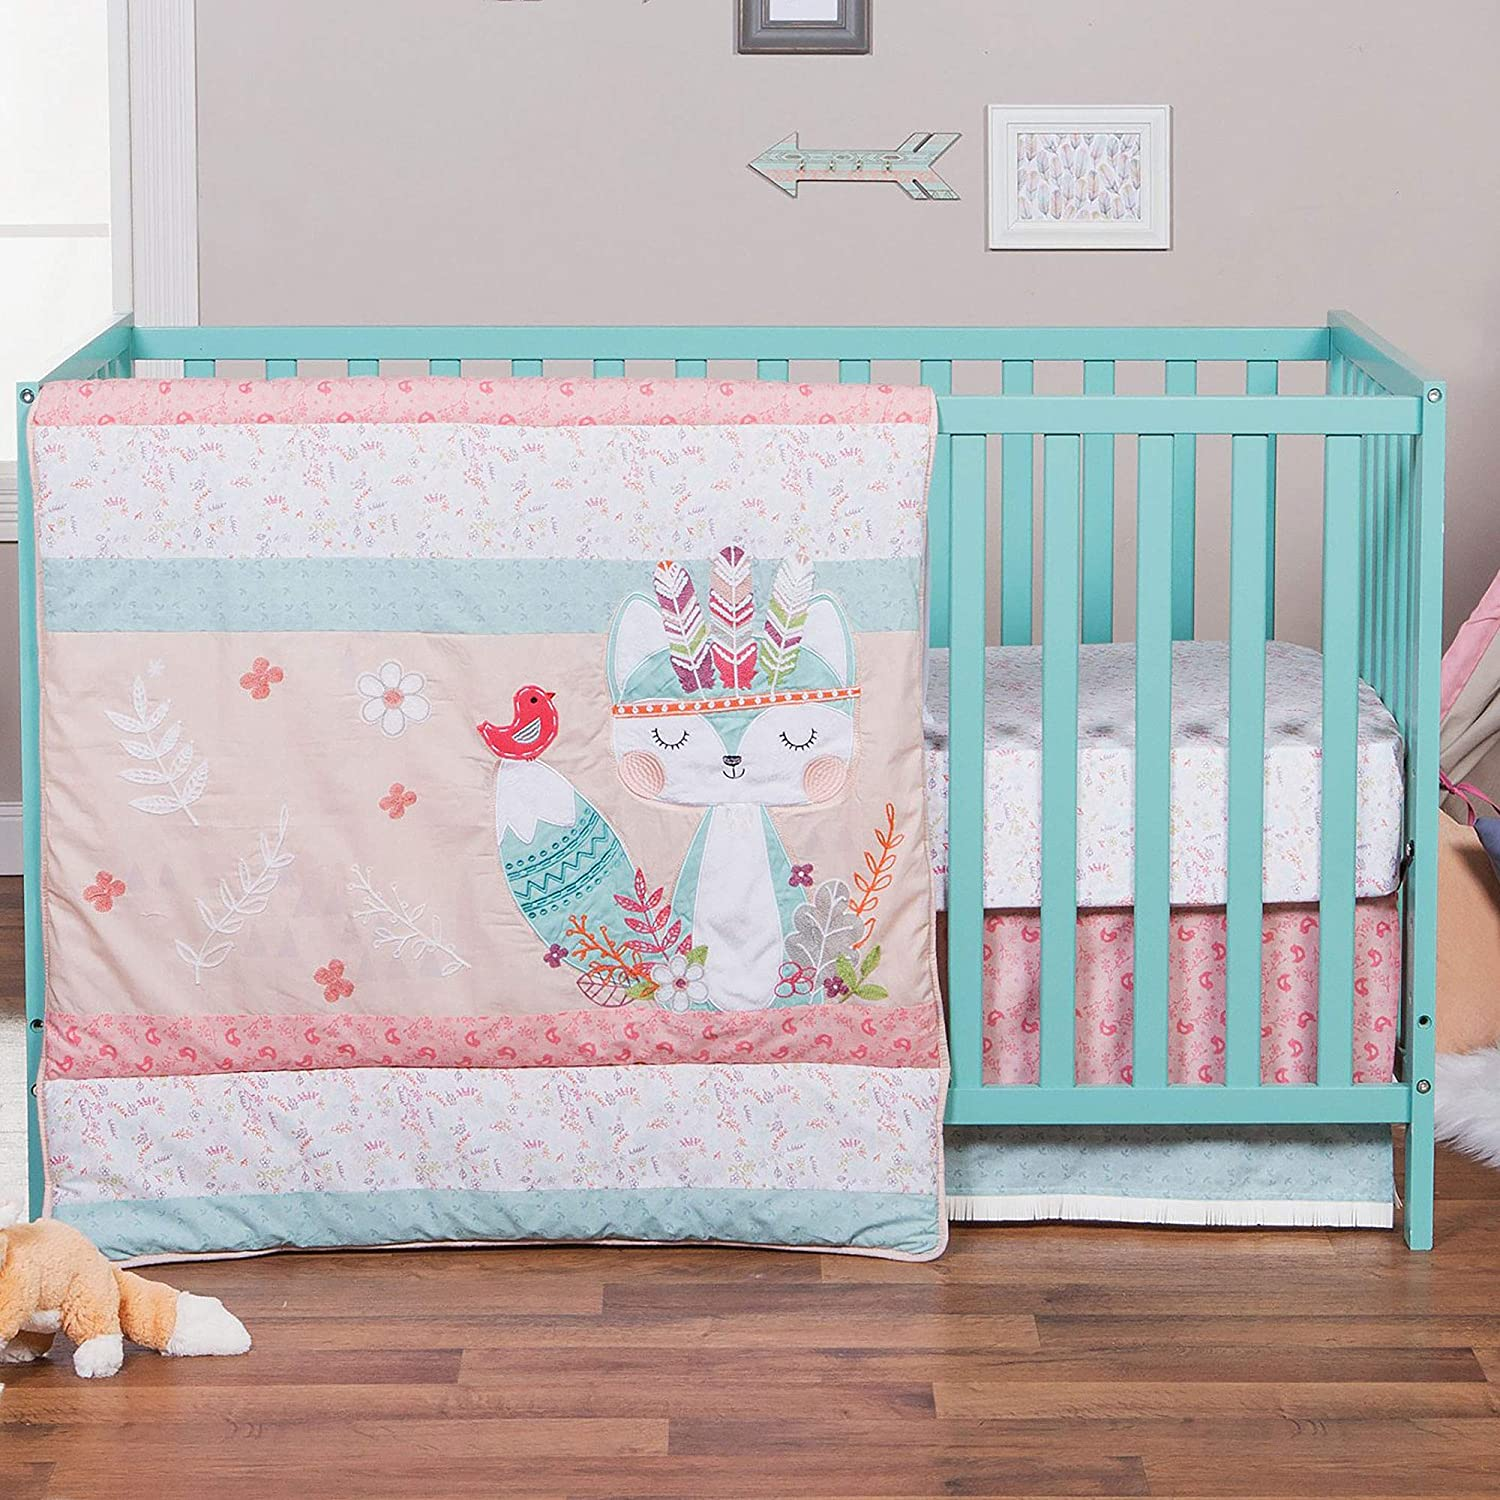 Wild Forever Pink Forest Popular brand in the world Memphis Mall Animal Theme Bed Crib Baby 4 Piece Girl